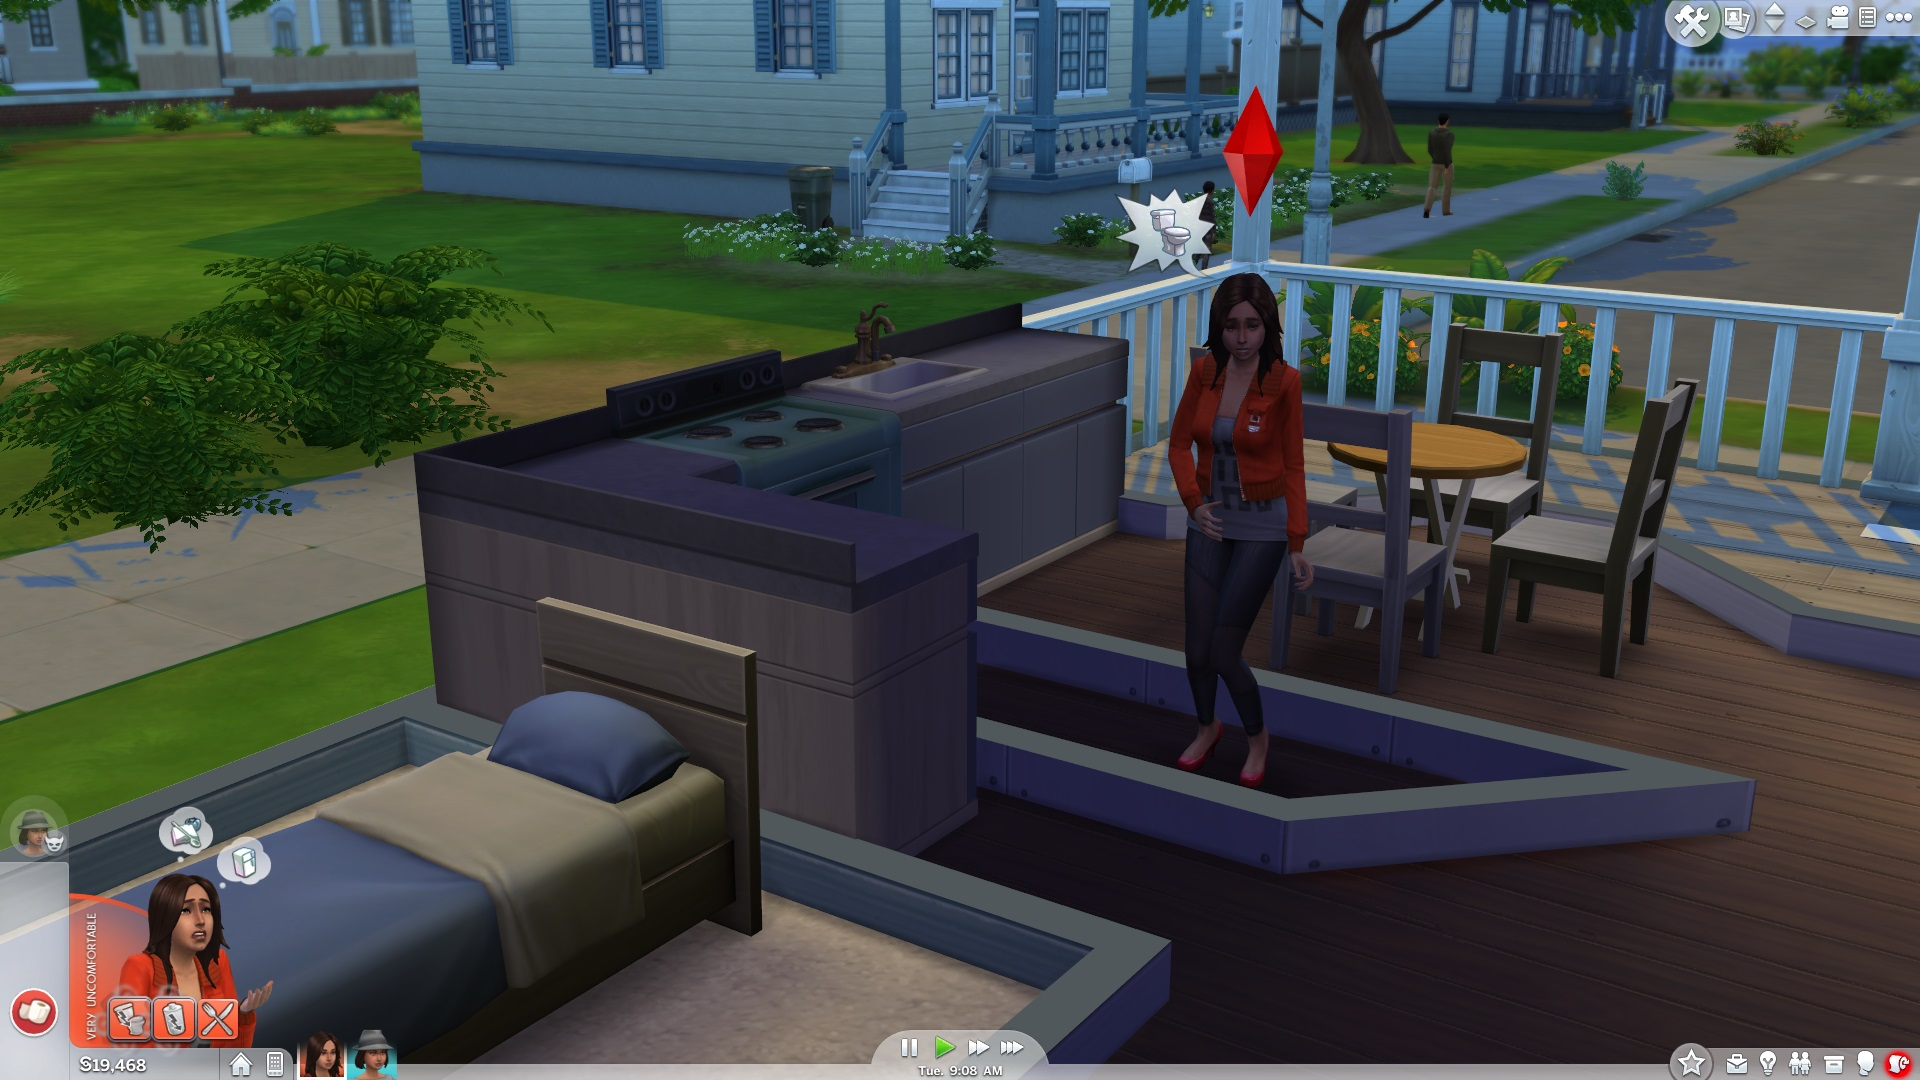 The Sims 4 review Halfway house